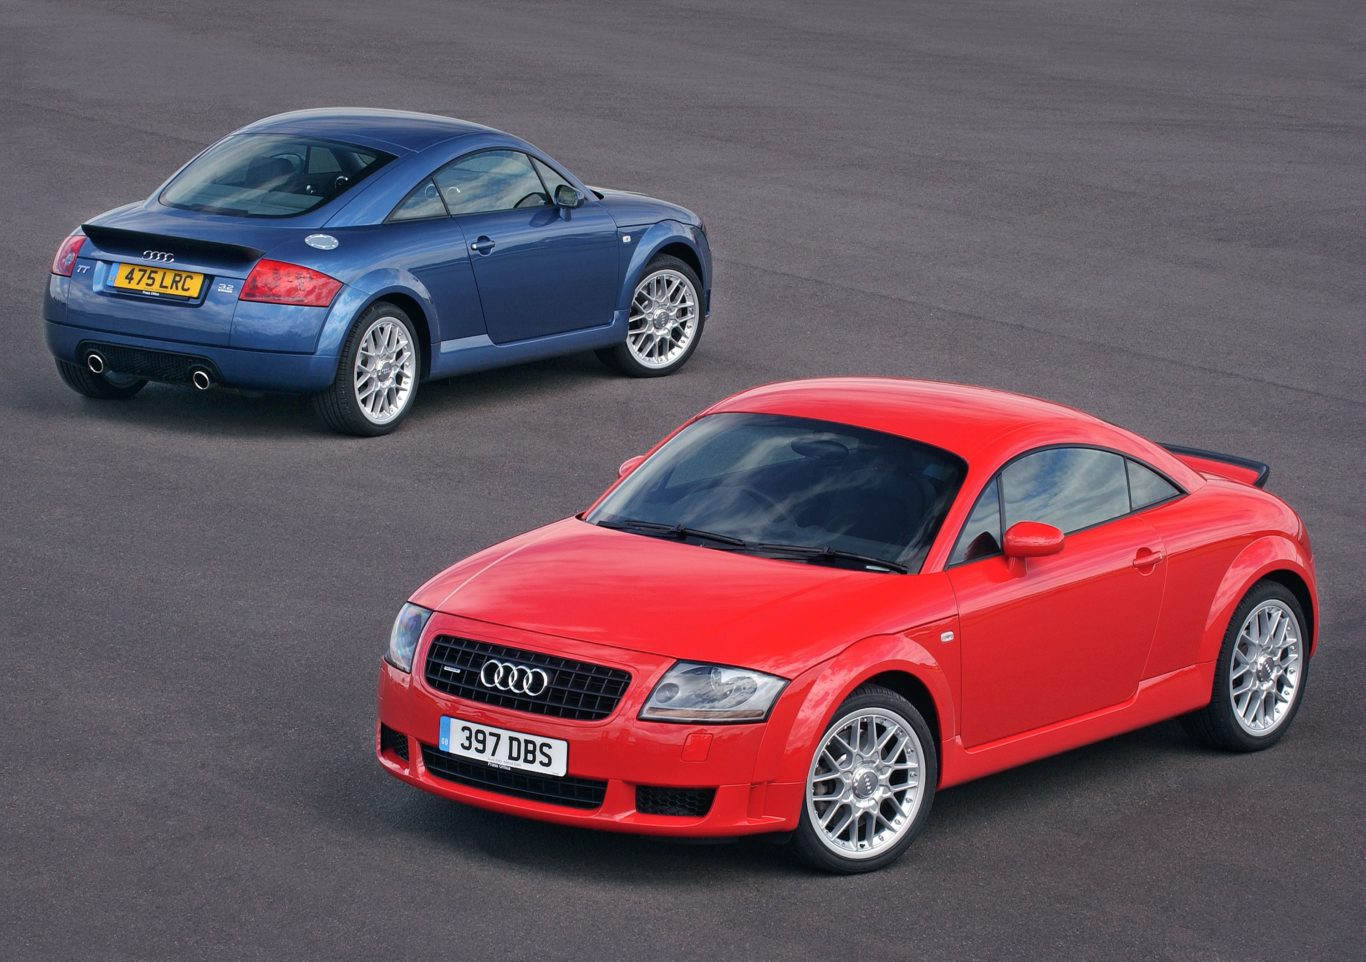 The Audi TT broke the mould in terms of styling